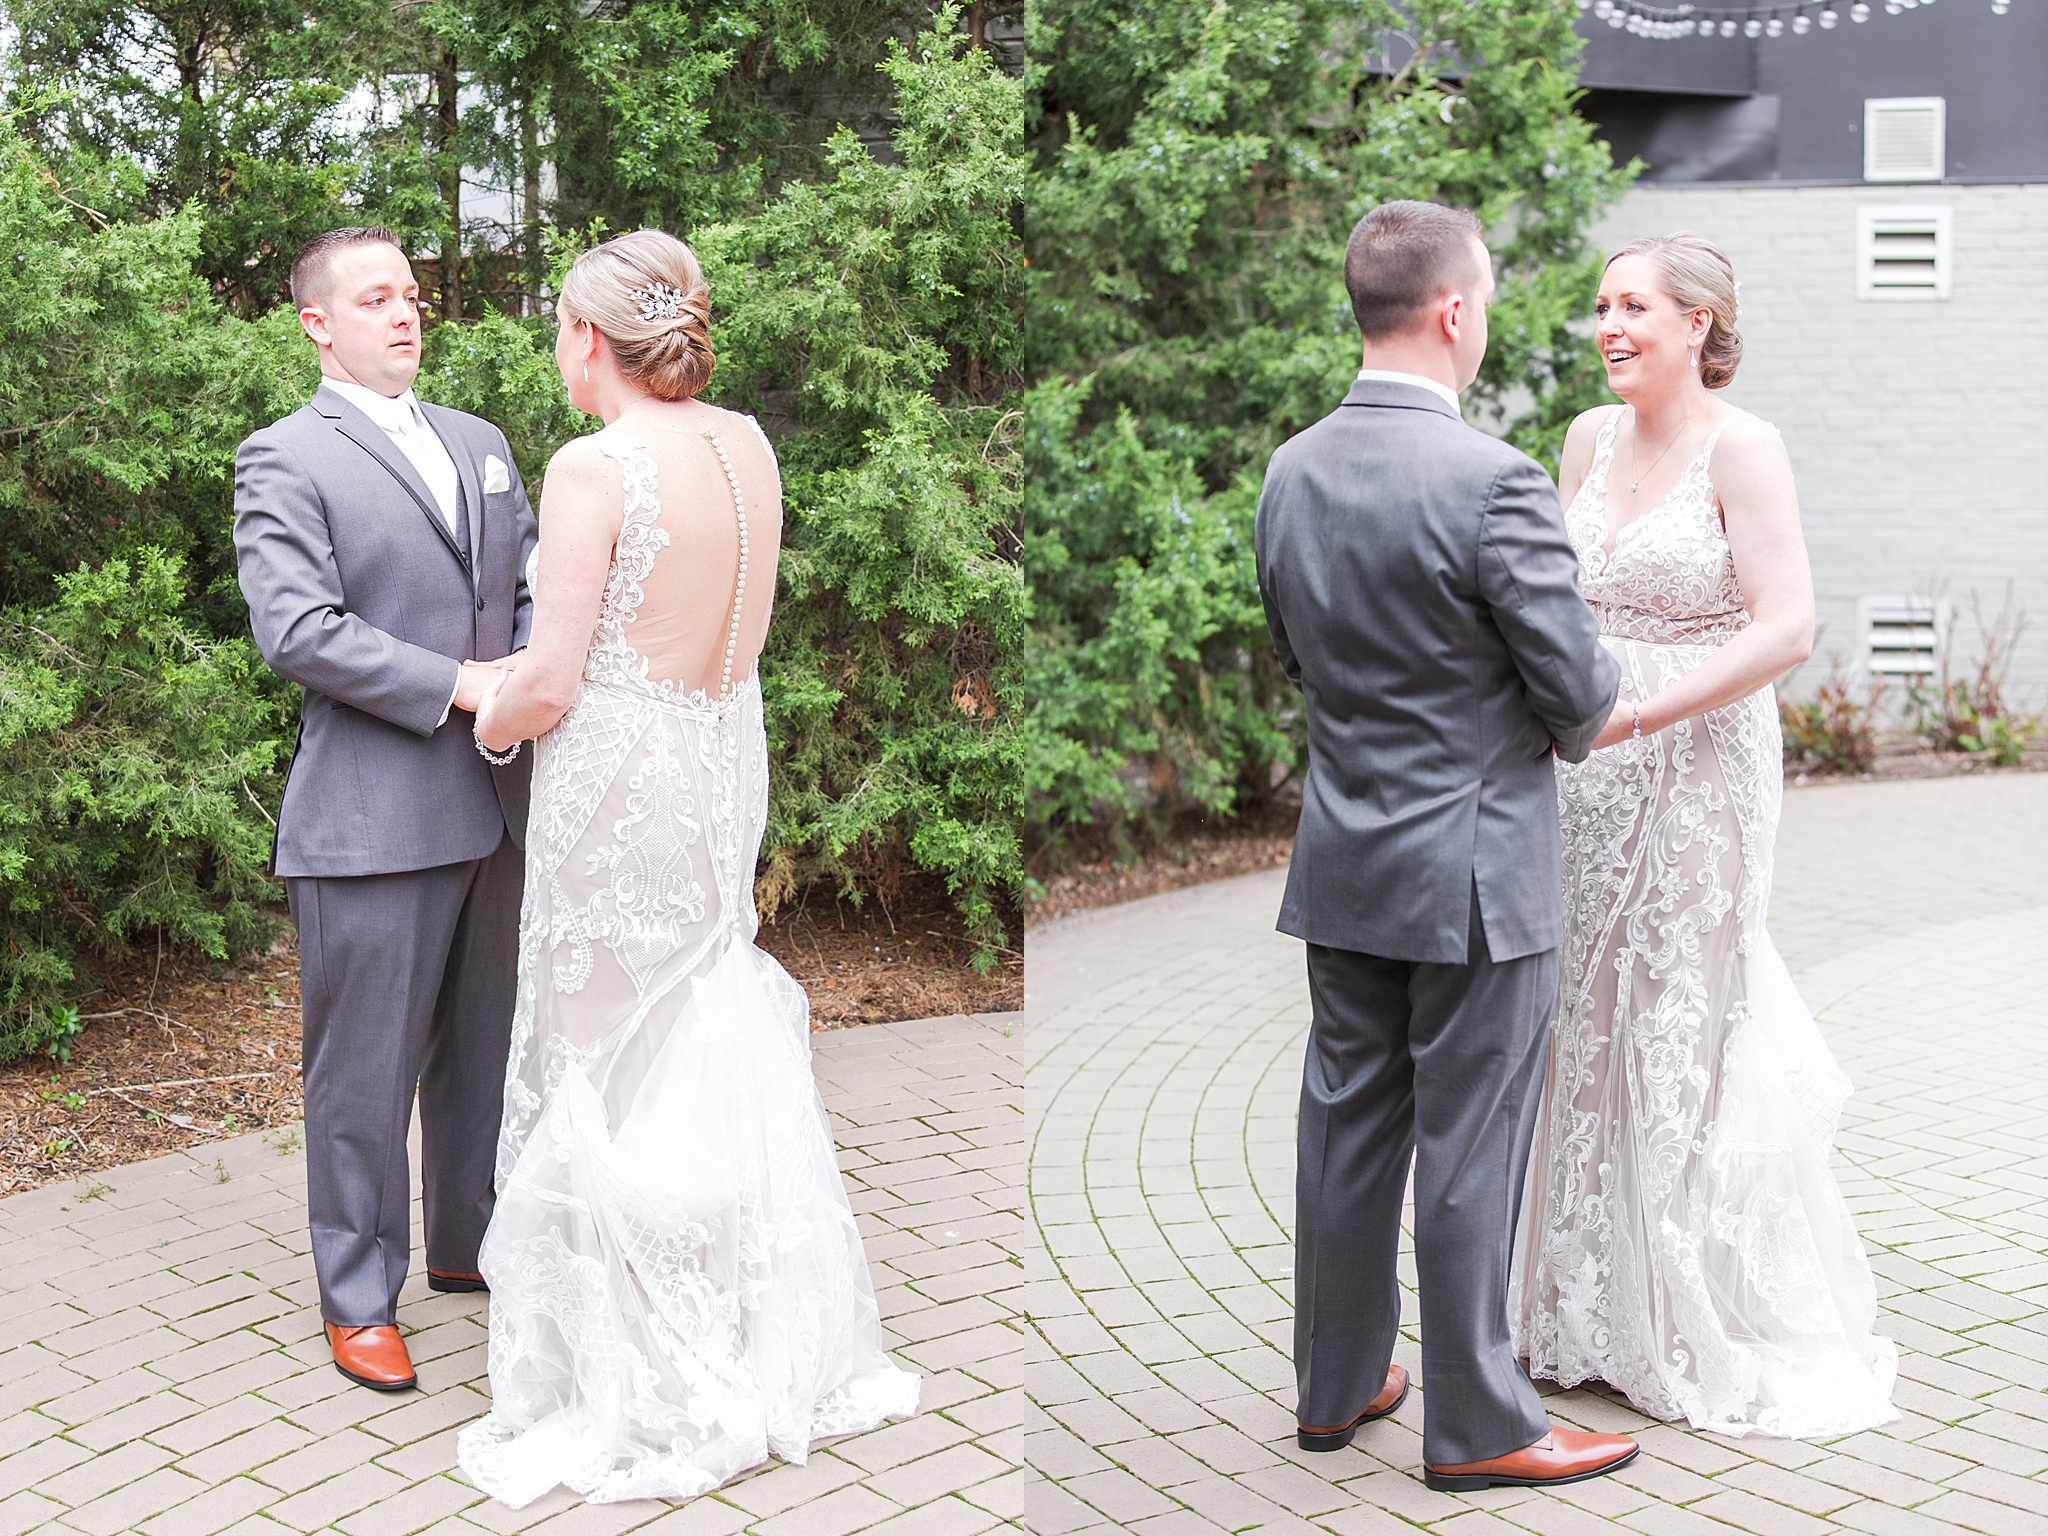 modern-romantic-wedding-photography-at-webers-in-ann-arbor-michigan-by-courtney-carolyn-photography_0022.jpg